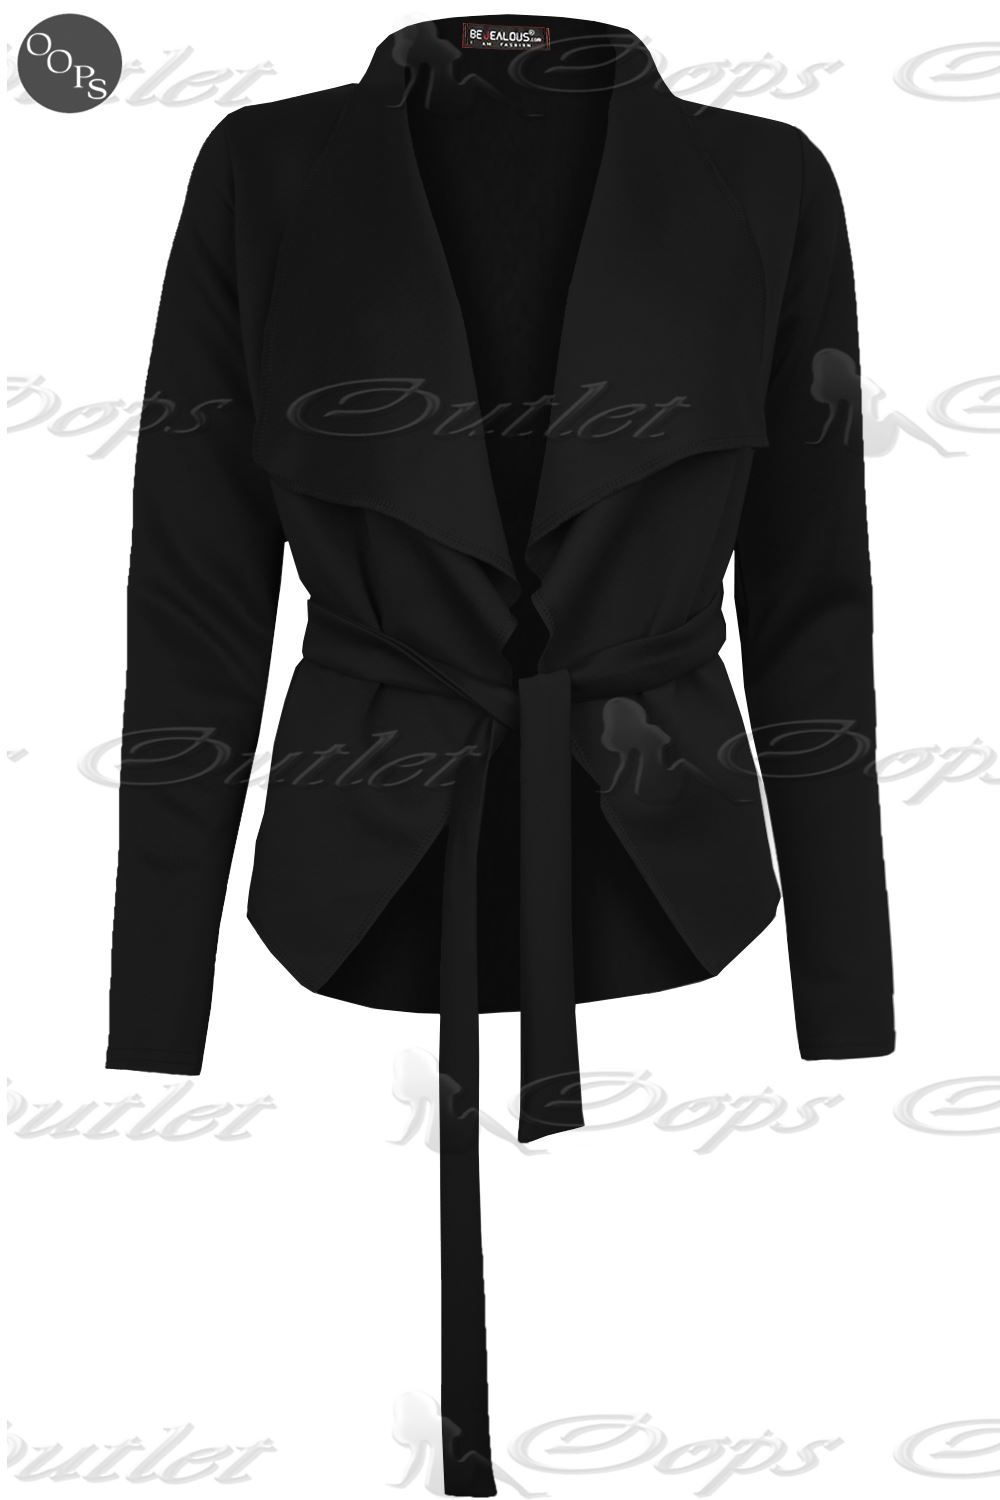 It is a hybrid of sorts because it is more formal than a sports jacket but unlike the suit jacket, a blazer is not made with a matching pair of trousers. The Fit Blazers have a looser fit compared to suit jackets.